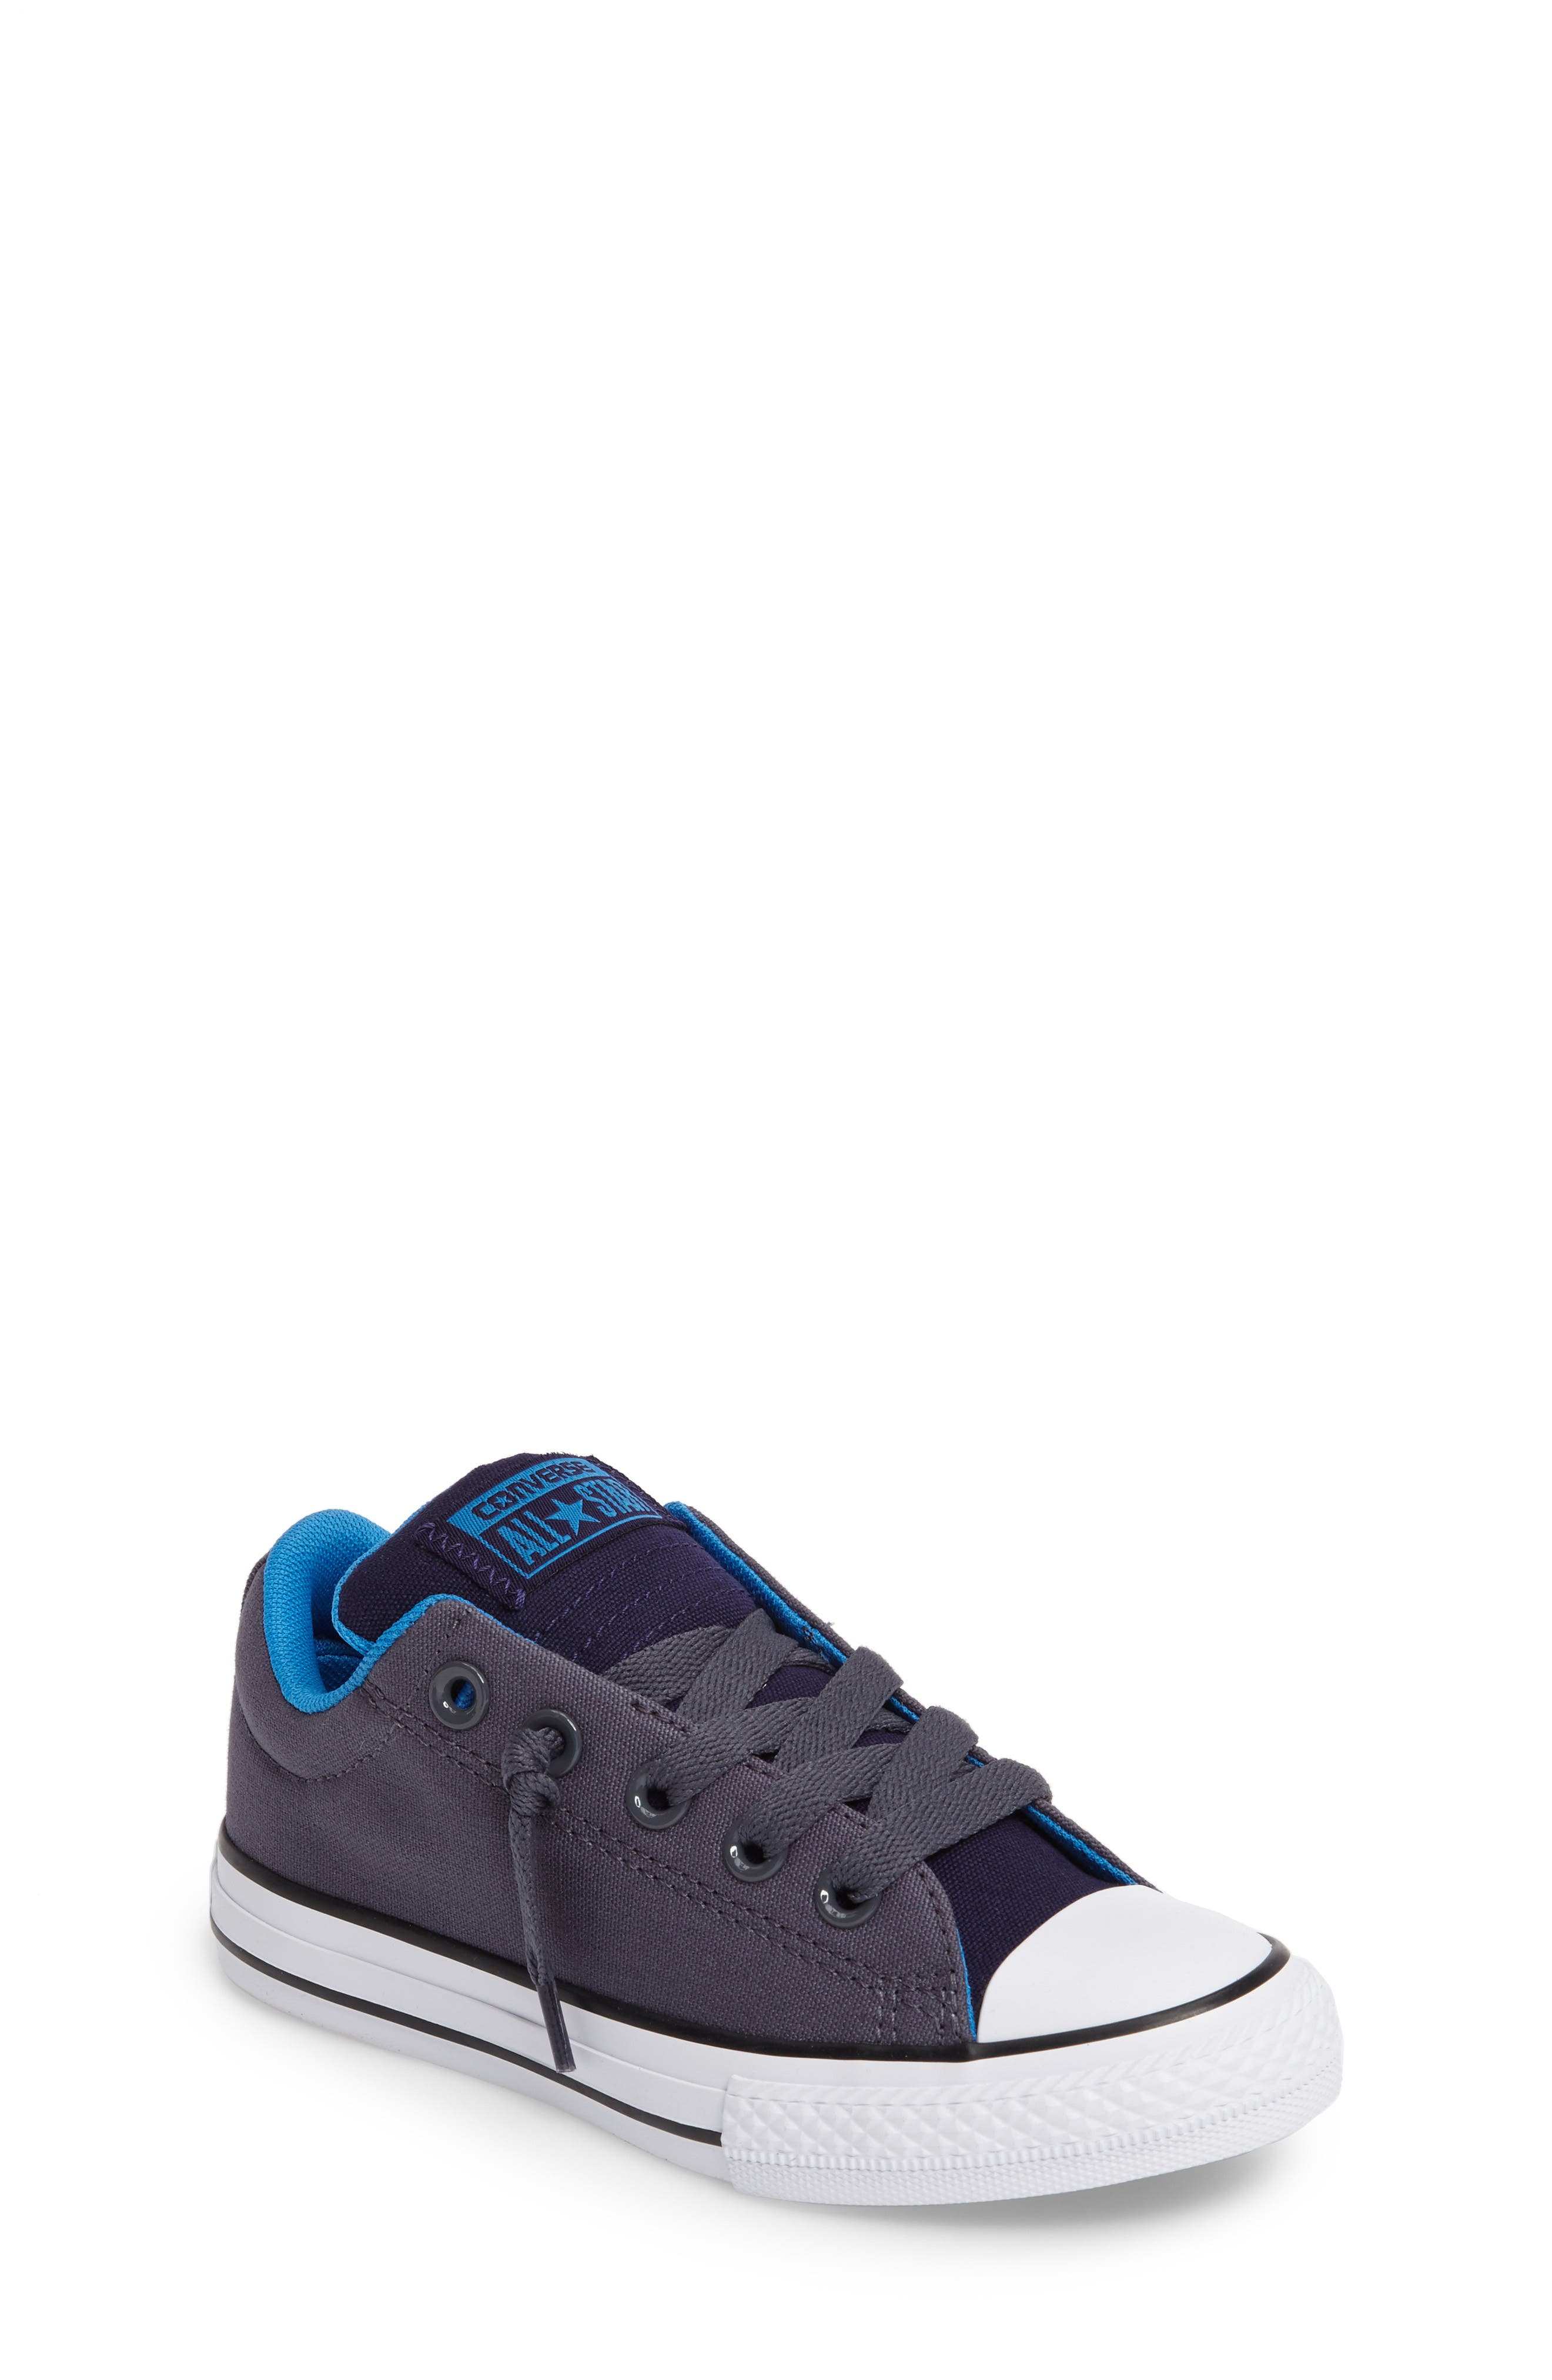 Main Image - Converse Chuck Taylor® All Star® 'Ox' Sneaker (Toddler, Little Kid & Big Kid)